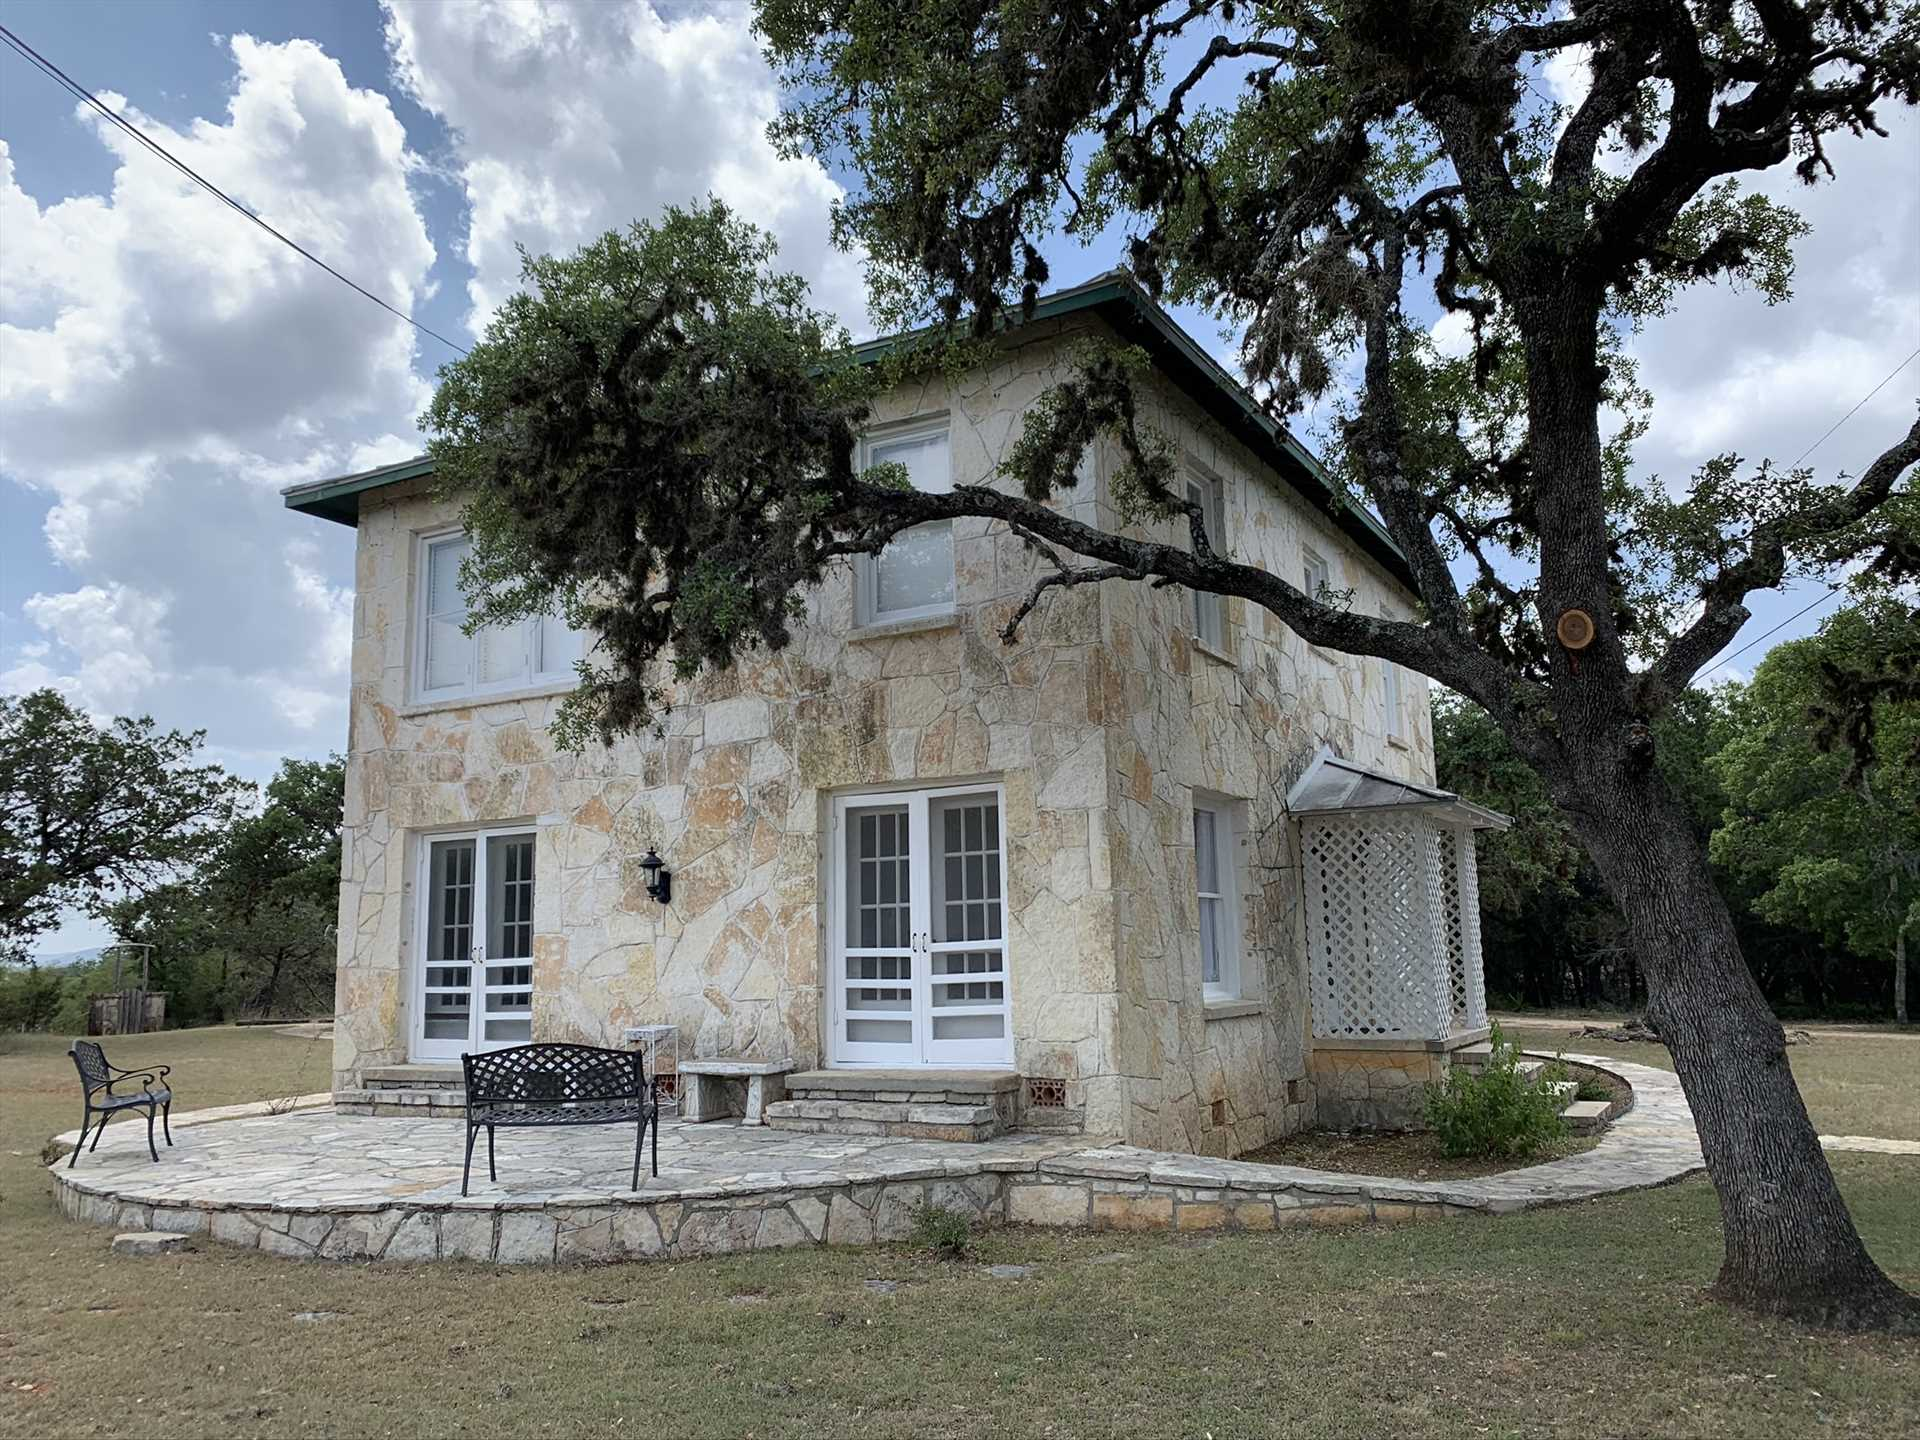 This riverside palace was built in the 1930s, and built to last! It's been modernized to provide a fun and memorable Hill Country getaway for your family and friends.